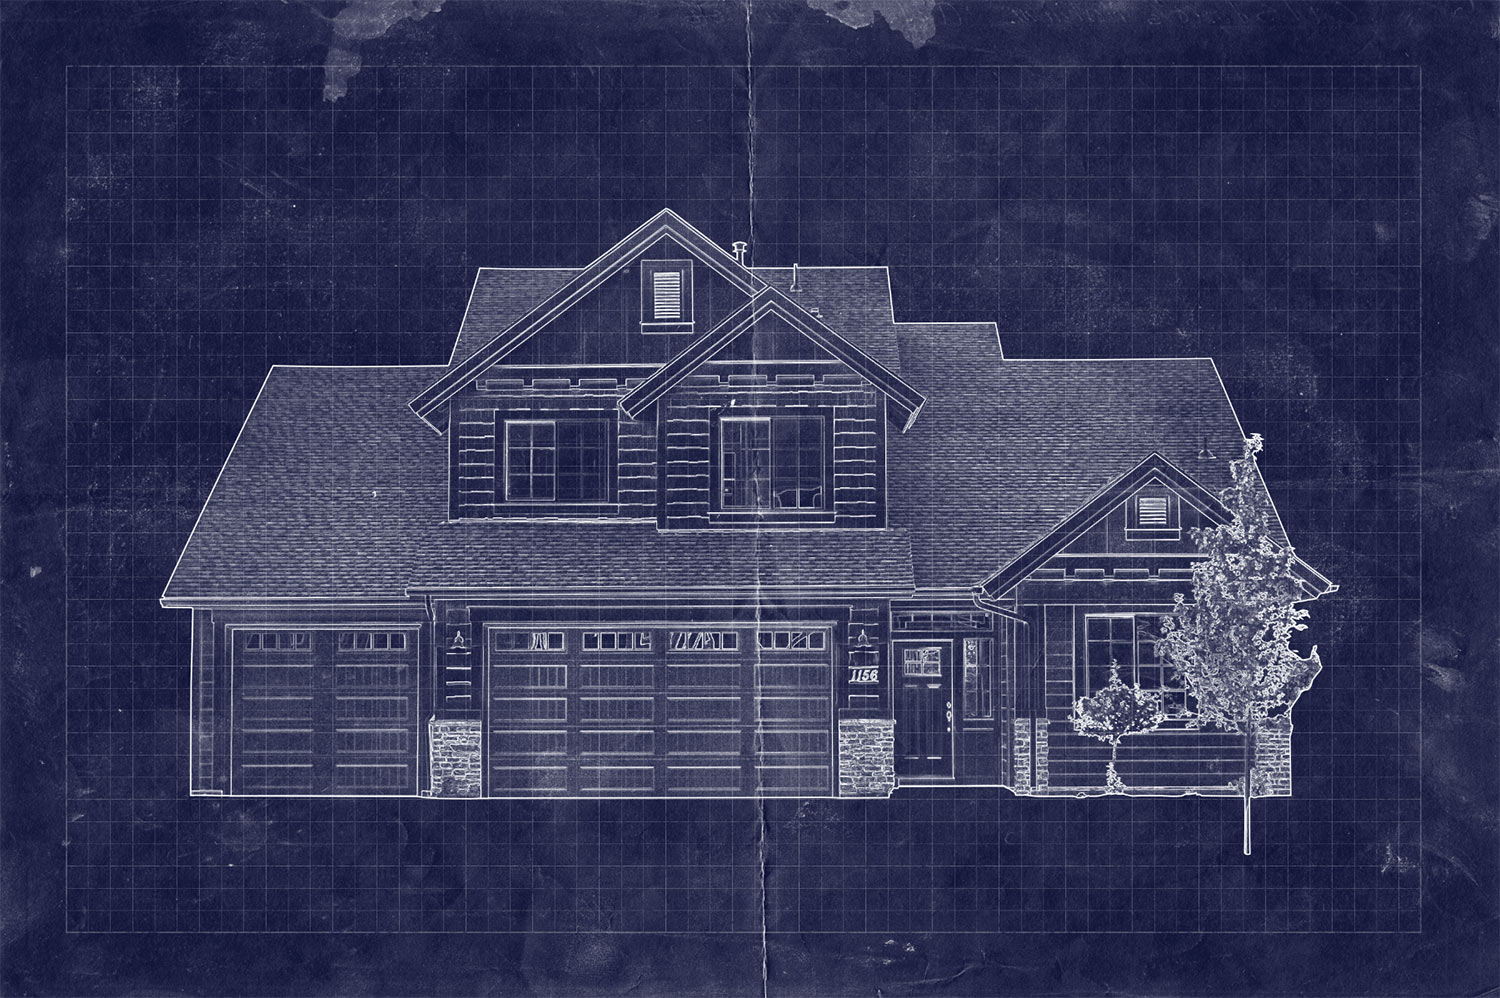 How to create a blueprint effect in adobe photoshop for House blueprint images